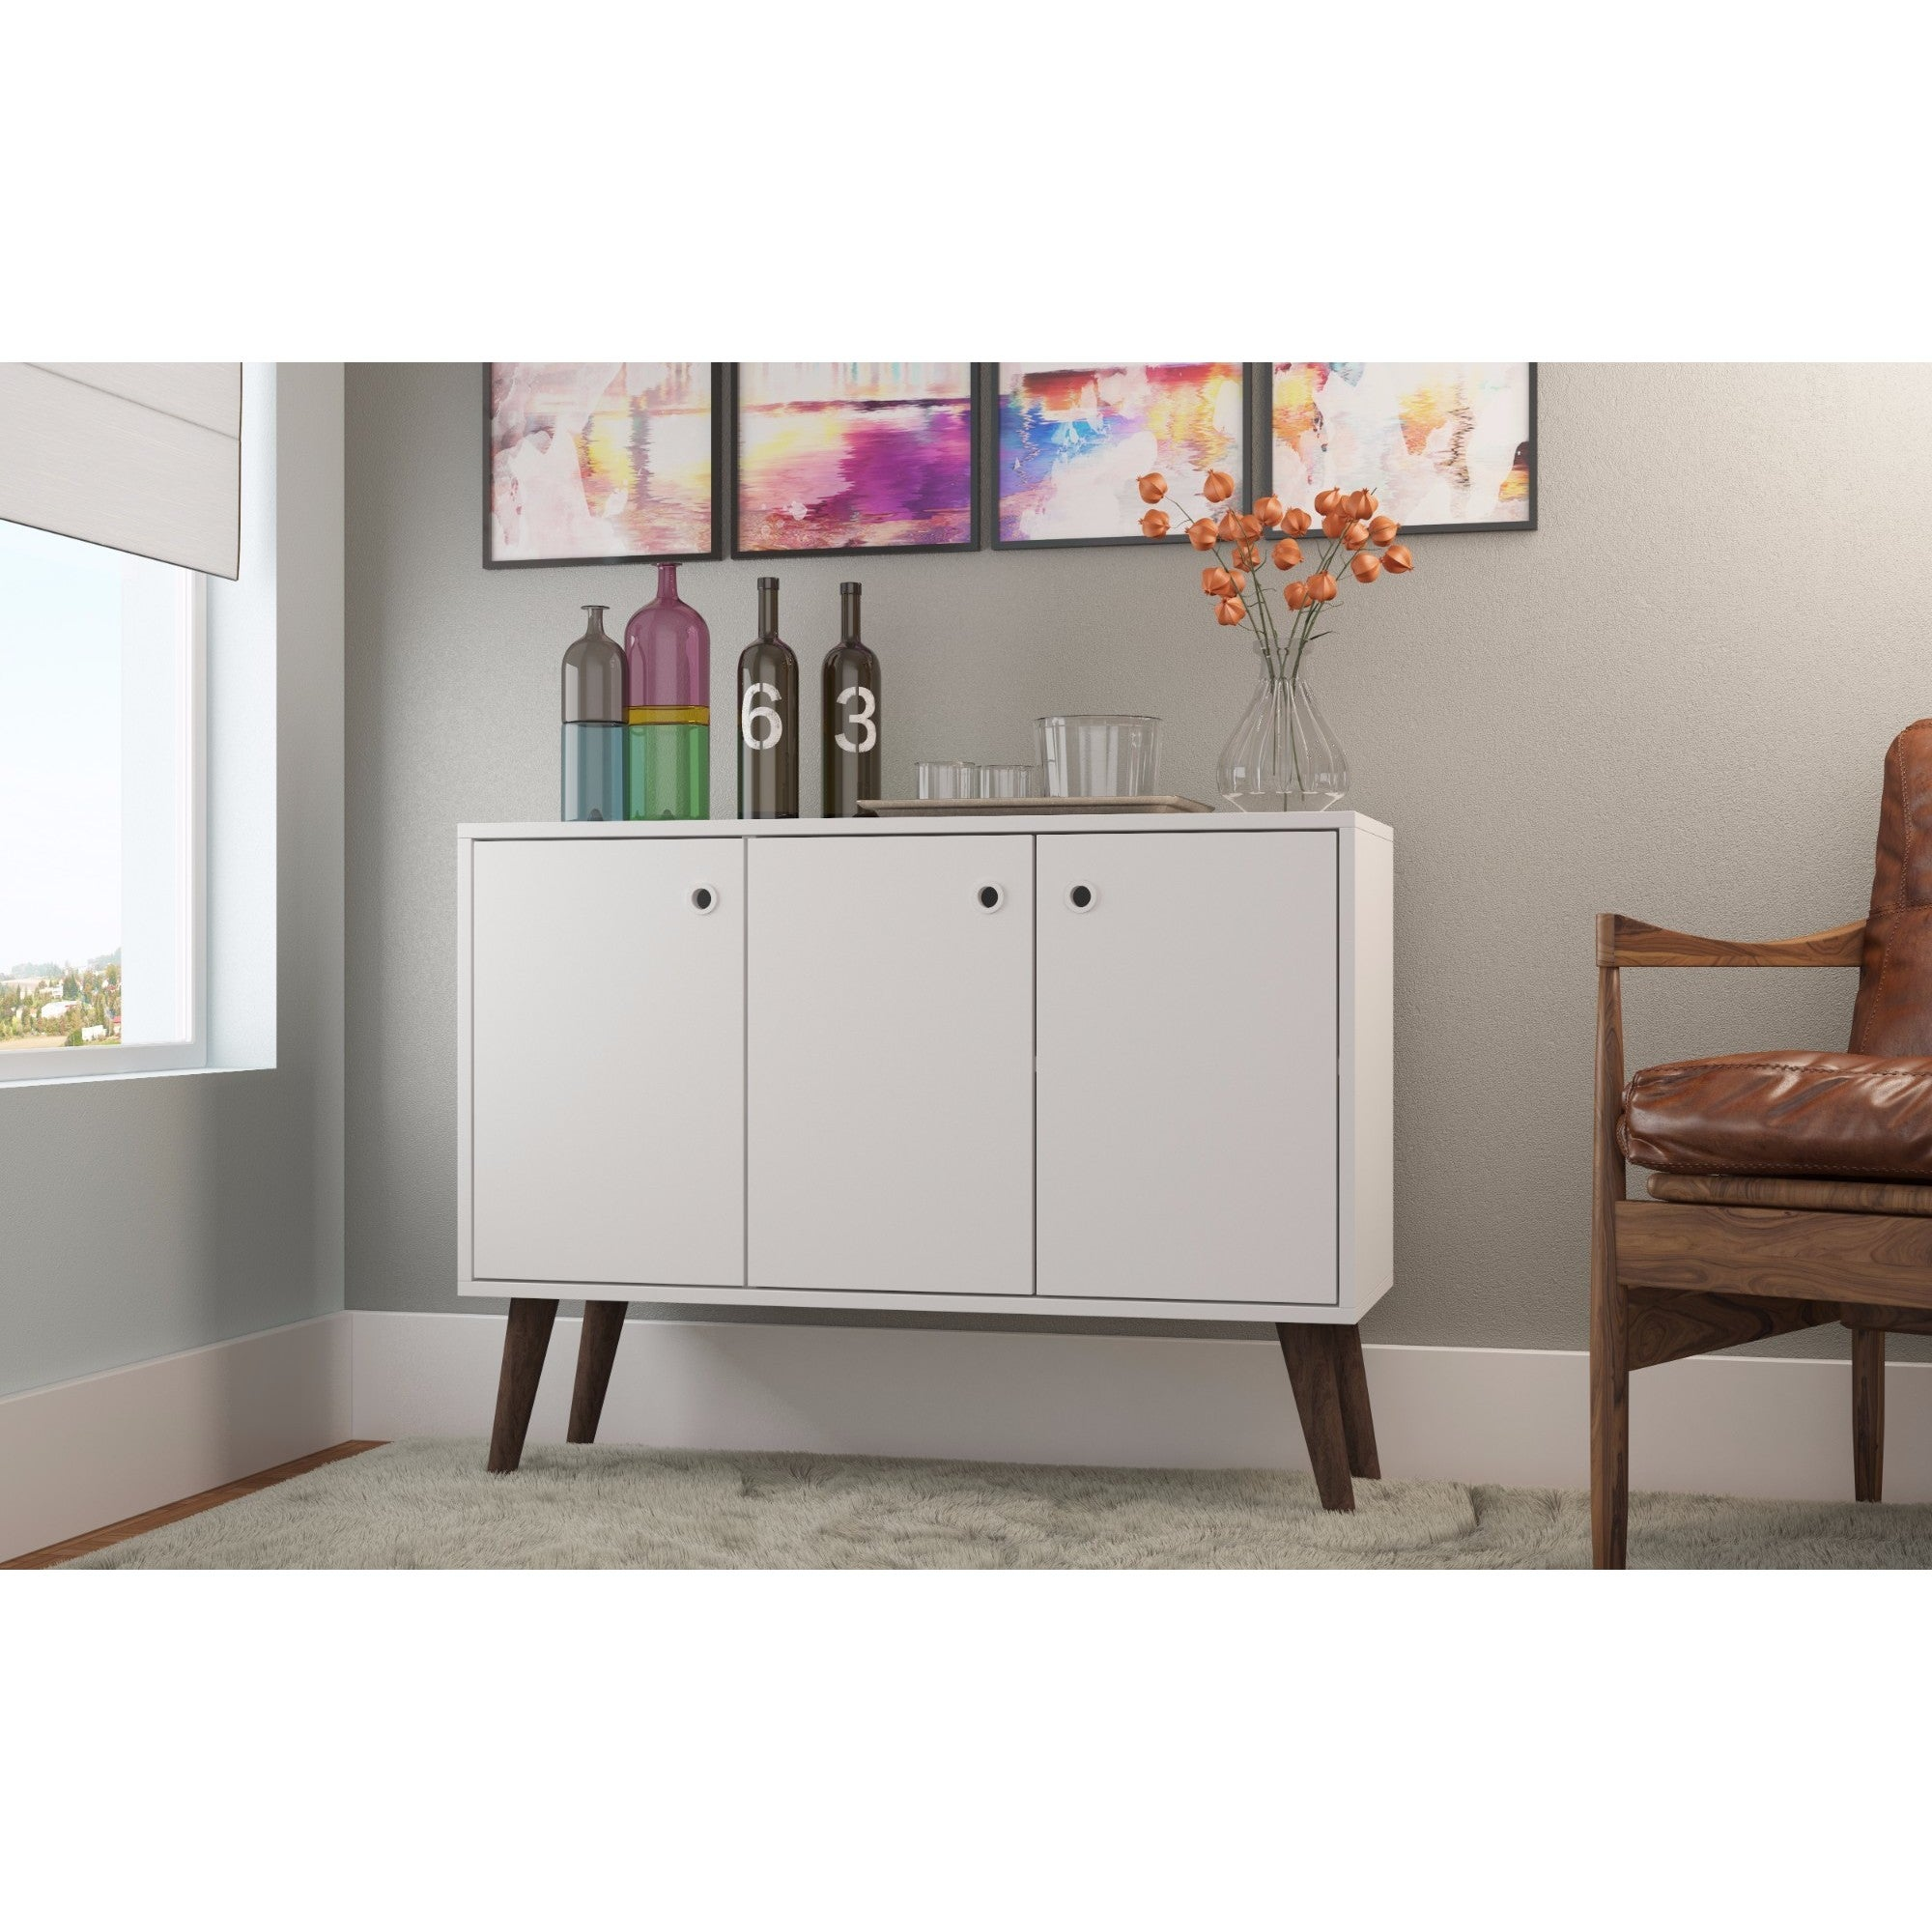 Buy Buffets Sideboards u0026 China Cabinets Online